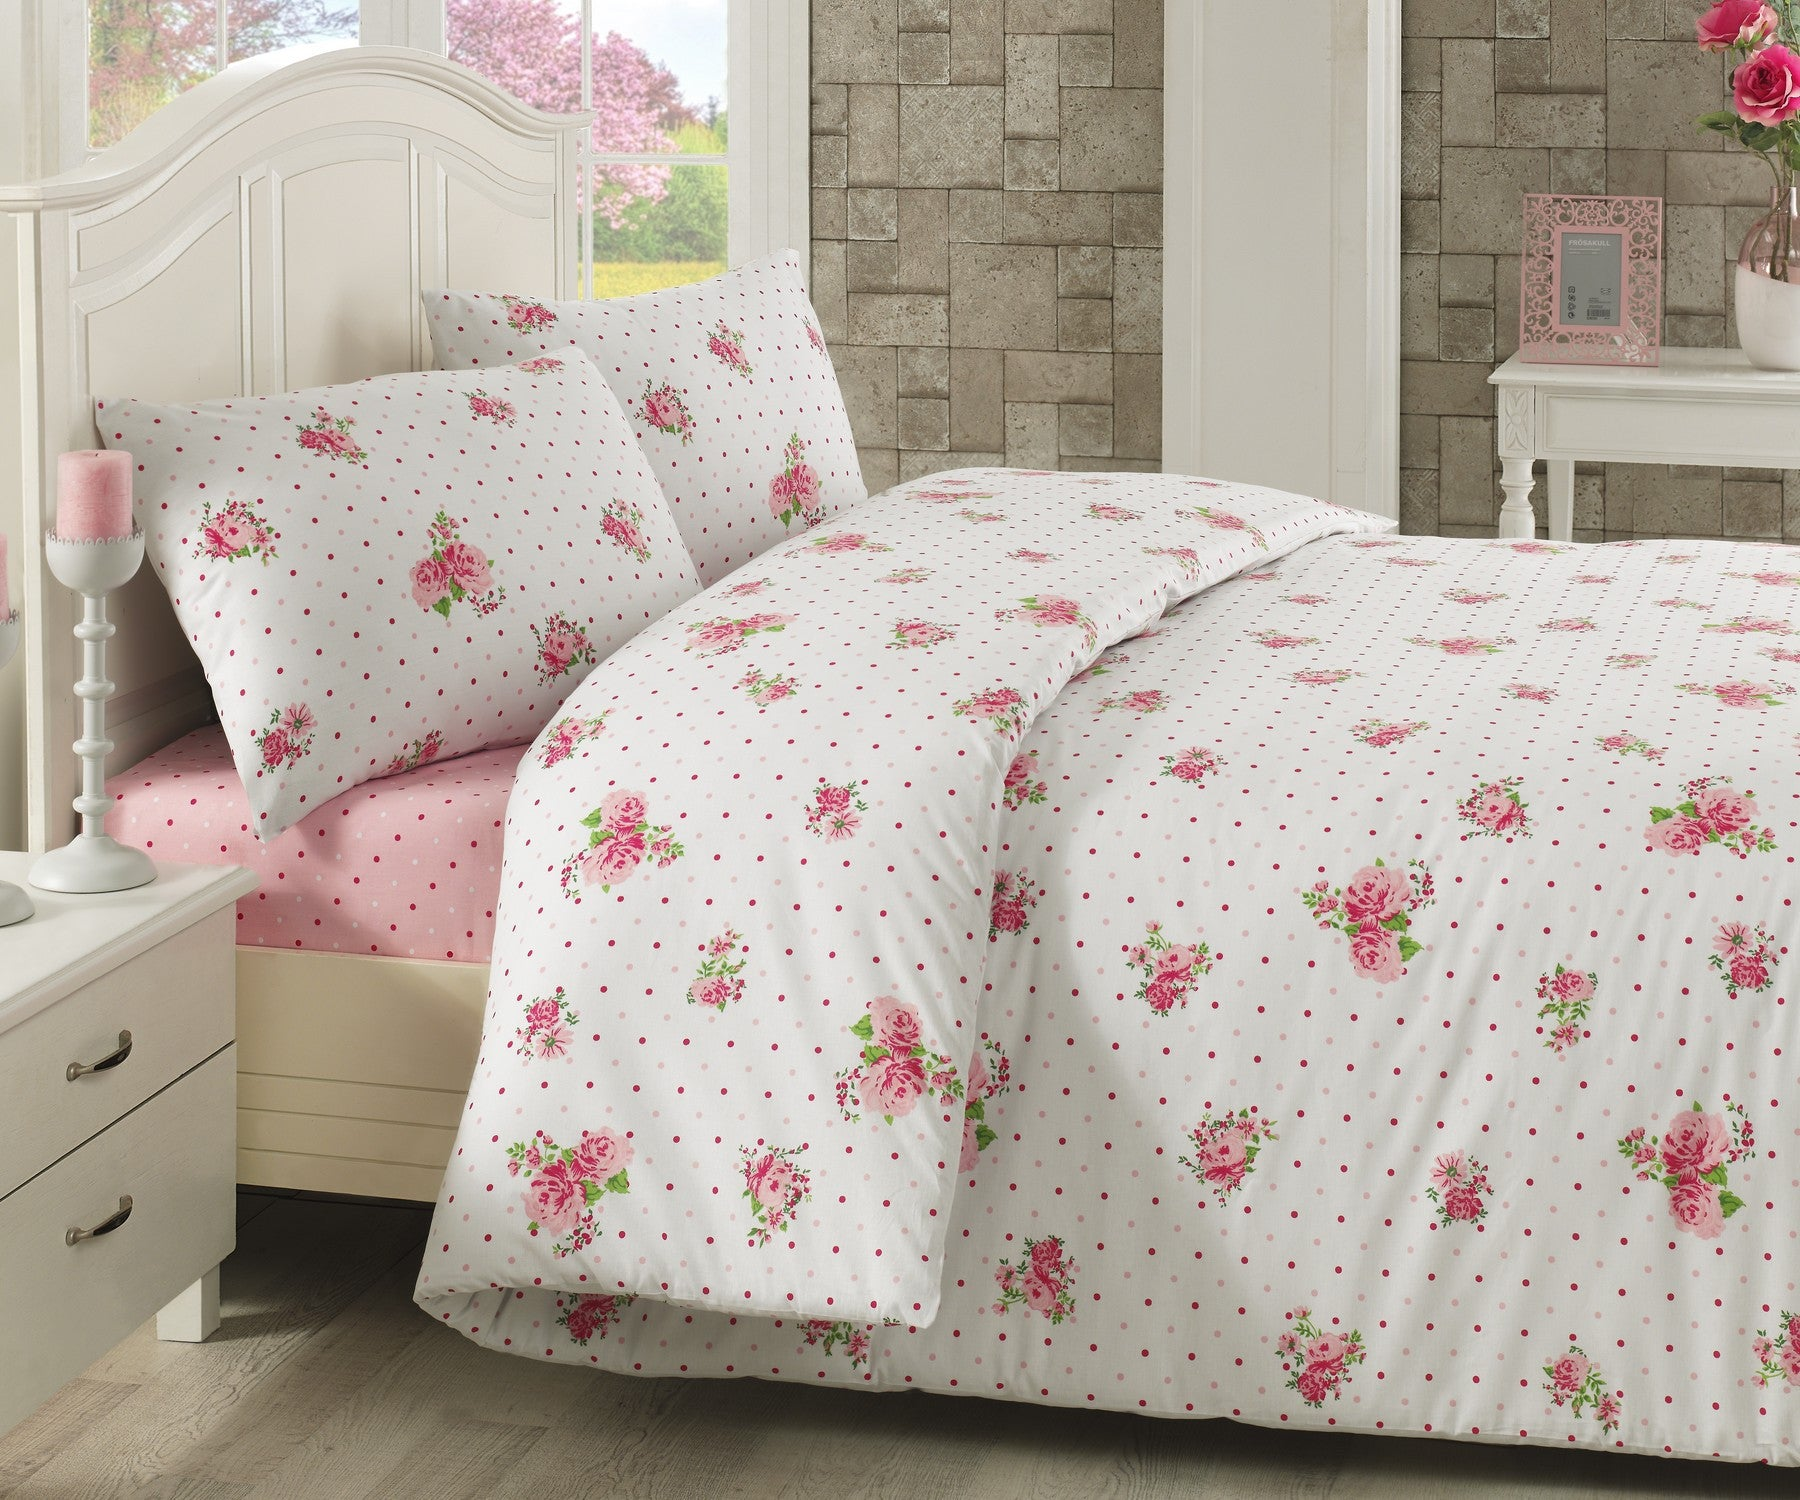 florina bettw sche 200 220 pink and more. Black Bedroom Furniture Sets. Home Design Ideas